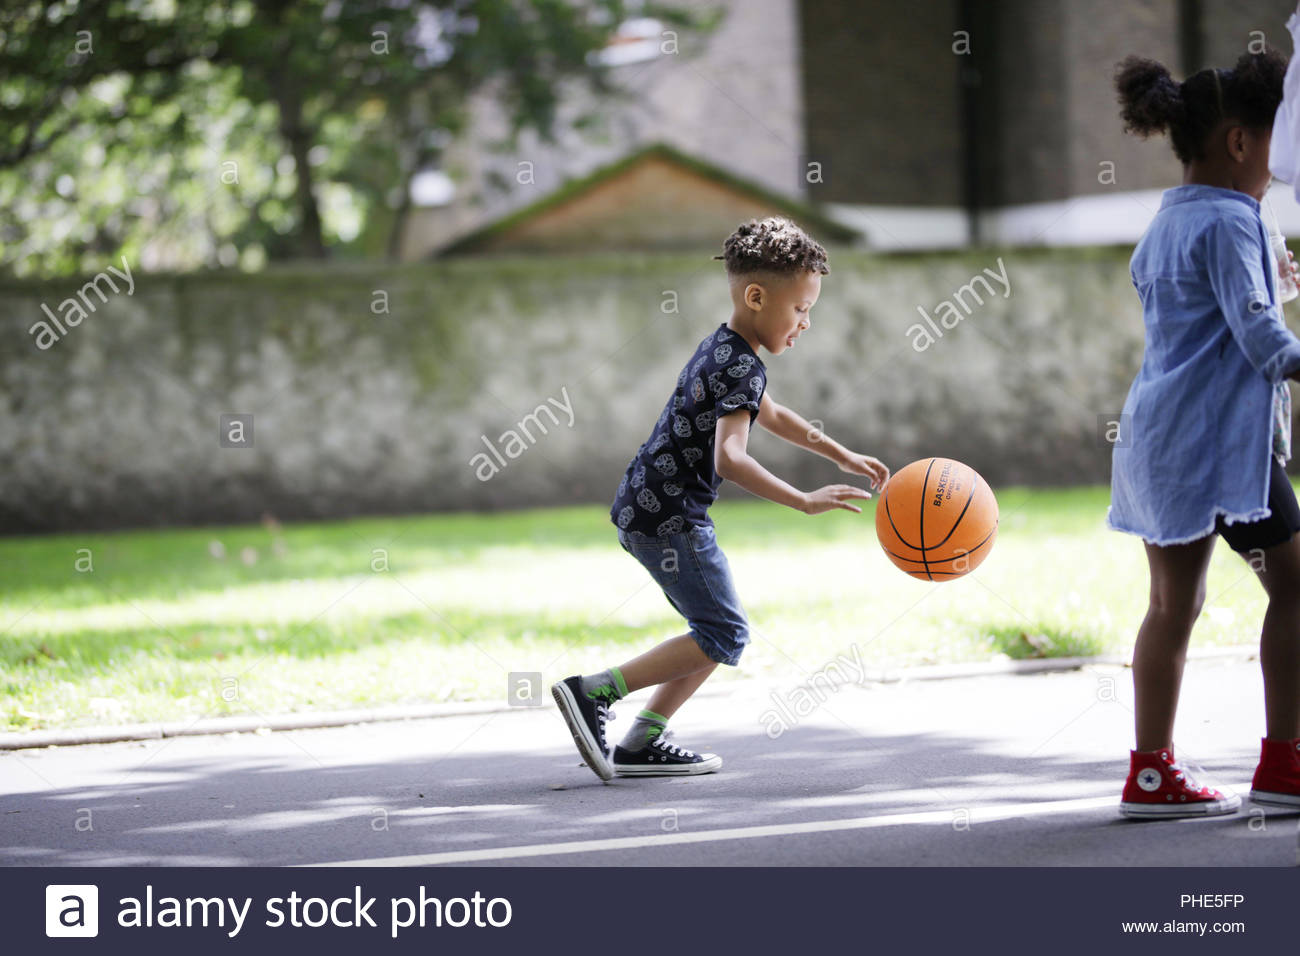 Boy playing basketball in park - Stock Image